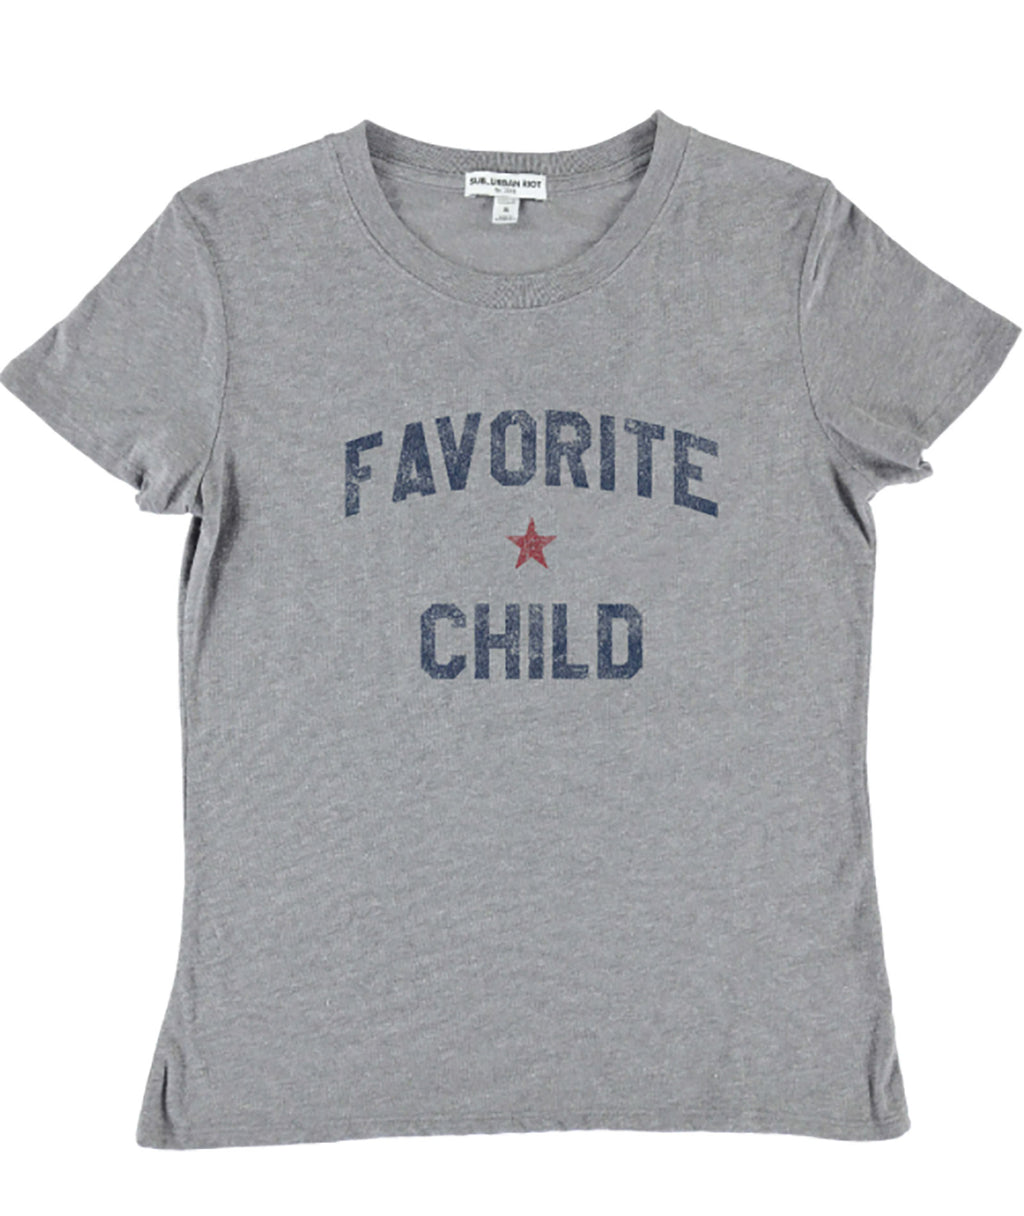 Sub_Urban Riot Girls Heather Grey Favorite Child Tee